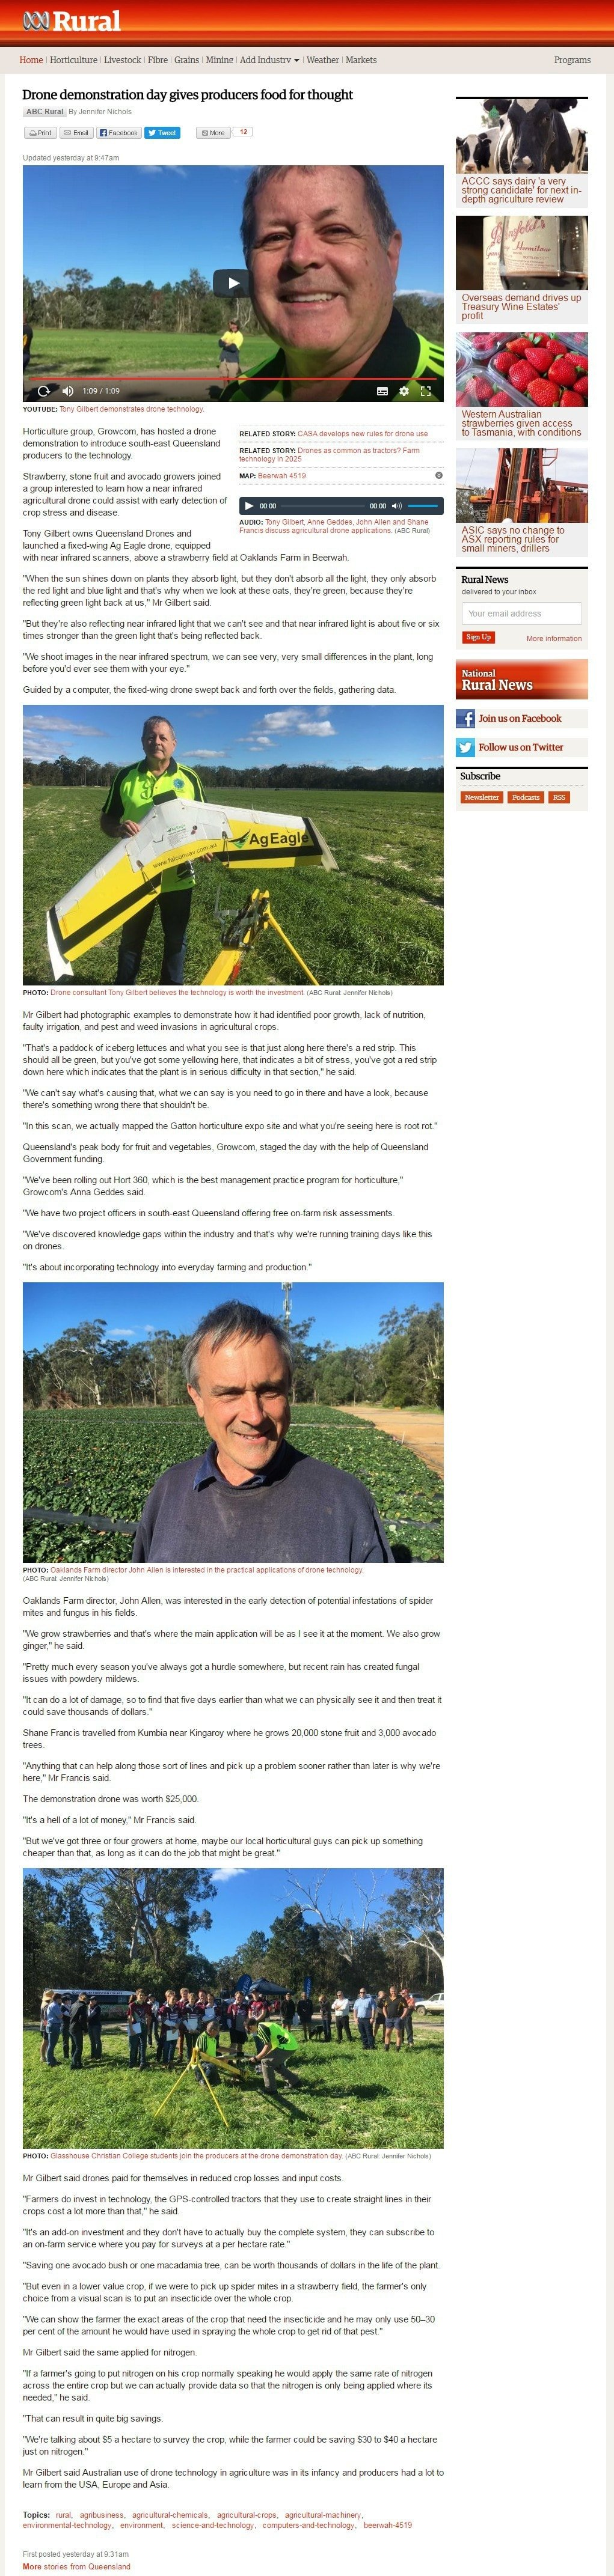 ABC Rural post about Beerwah strawberry UAV demonstration